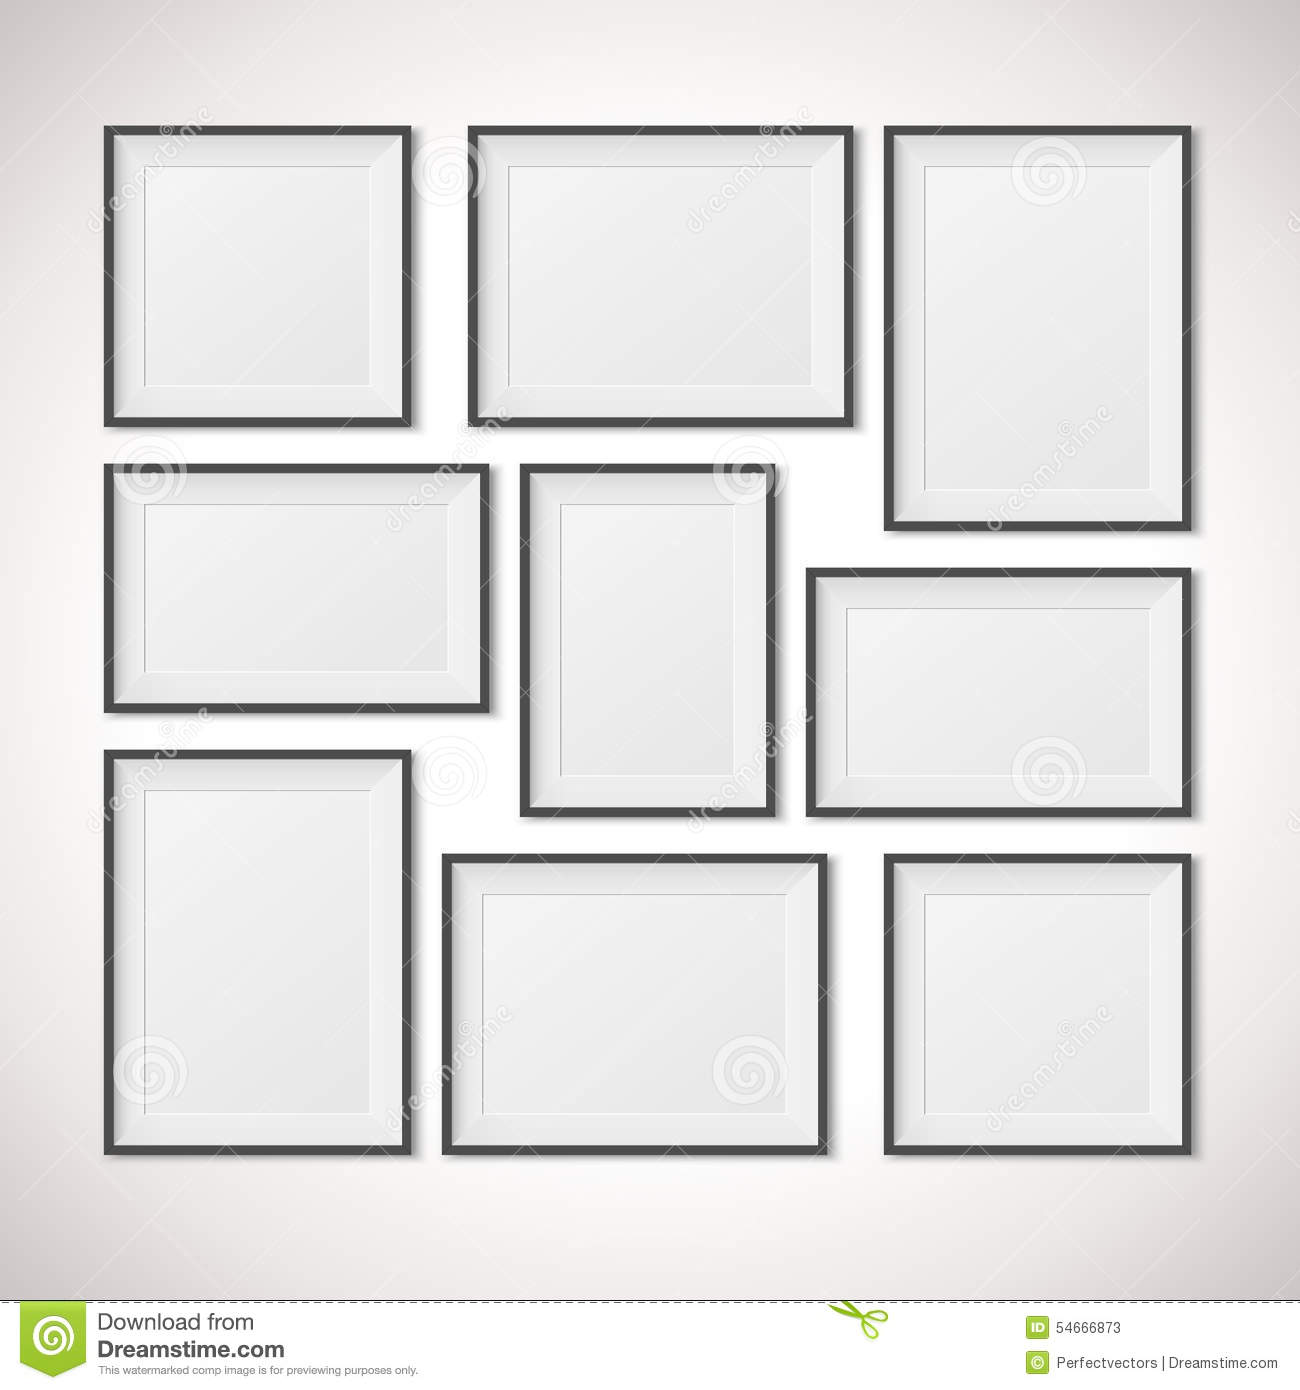 Multiple Frames stock vector. Illustration of blank, grey - 54666873